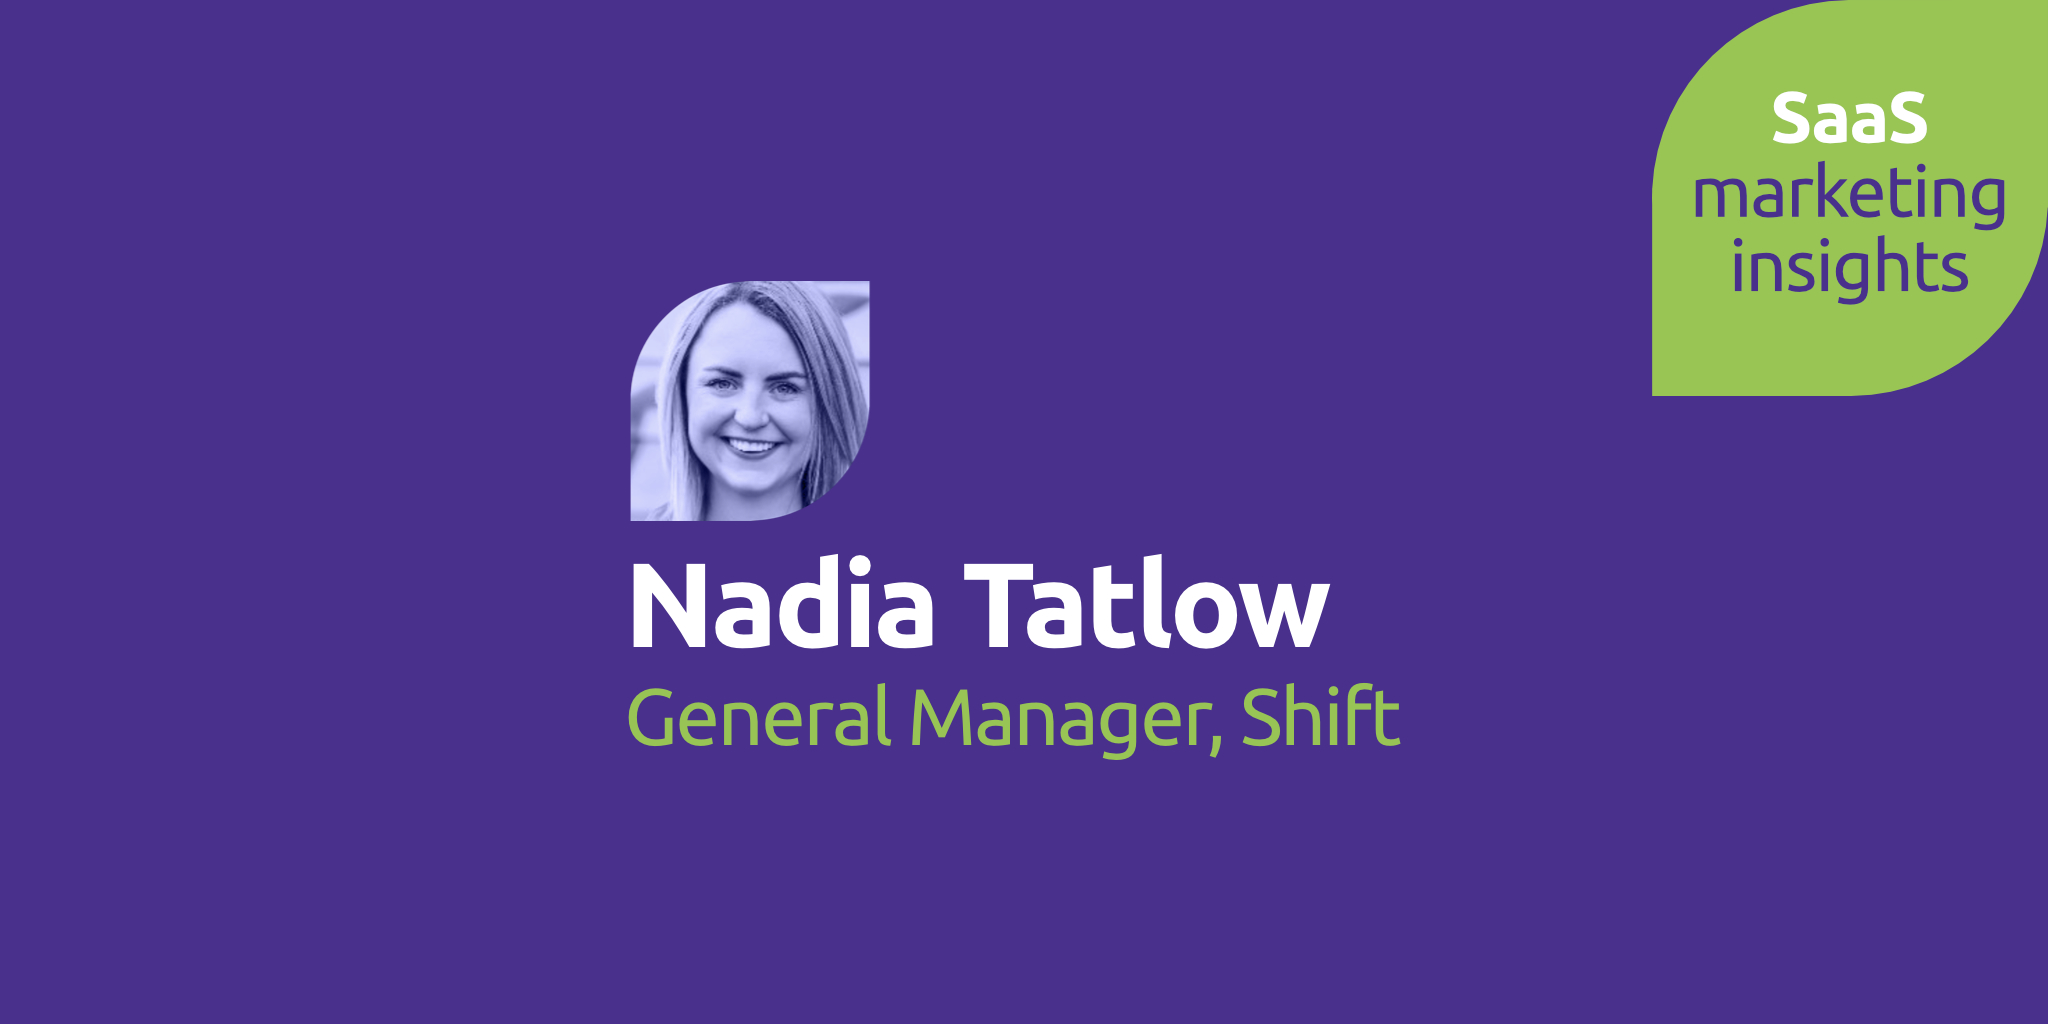 Nadia Tatlow, Shift, Redbrick